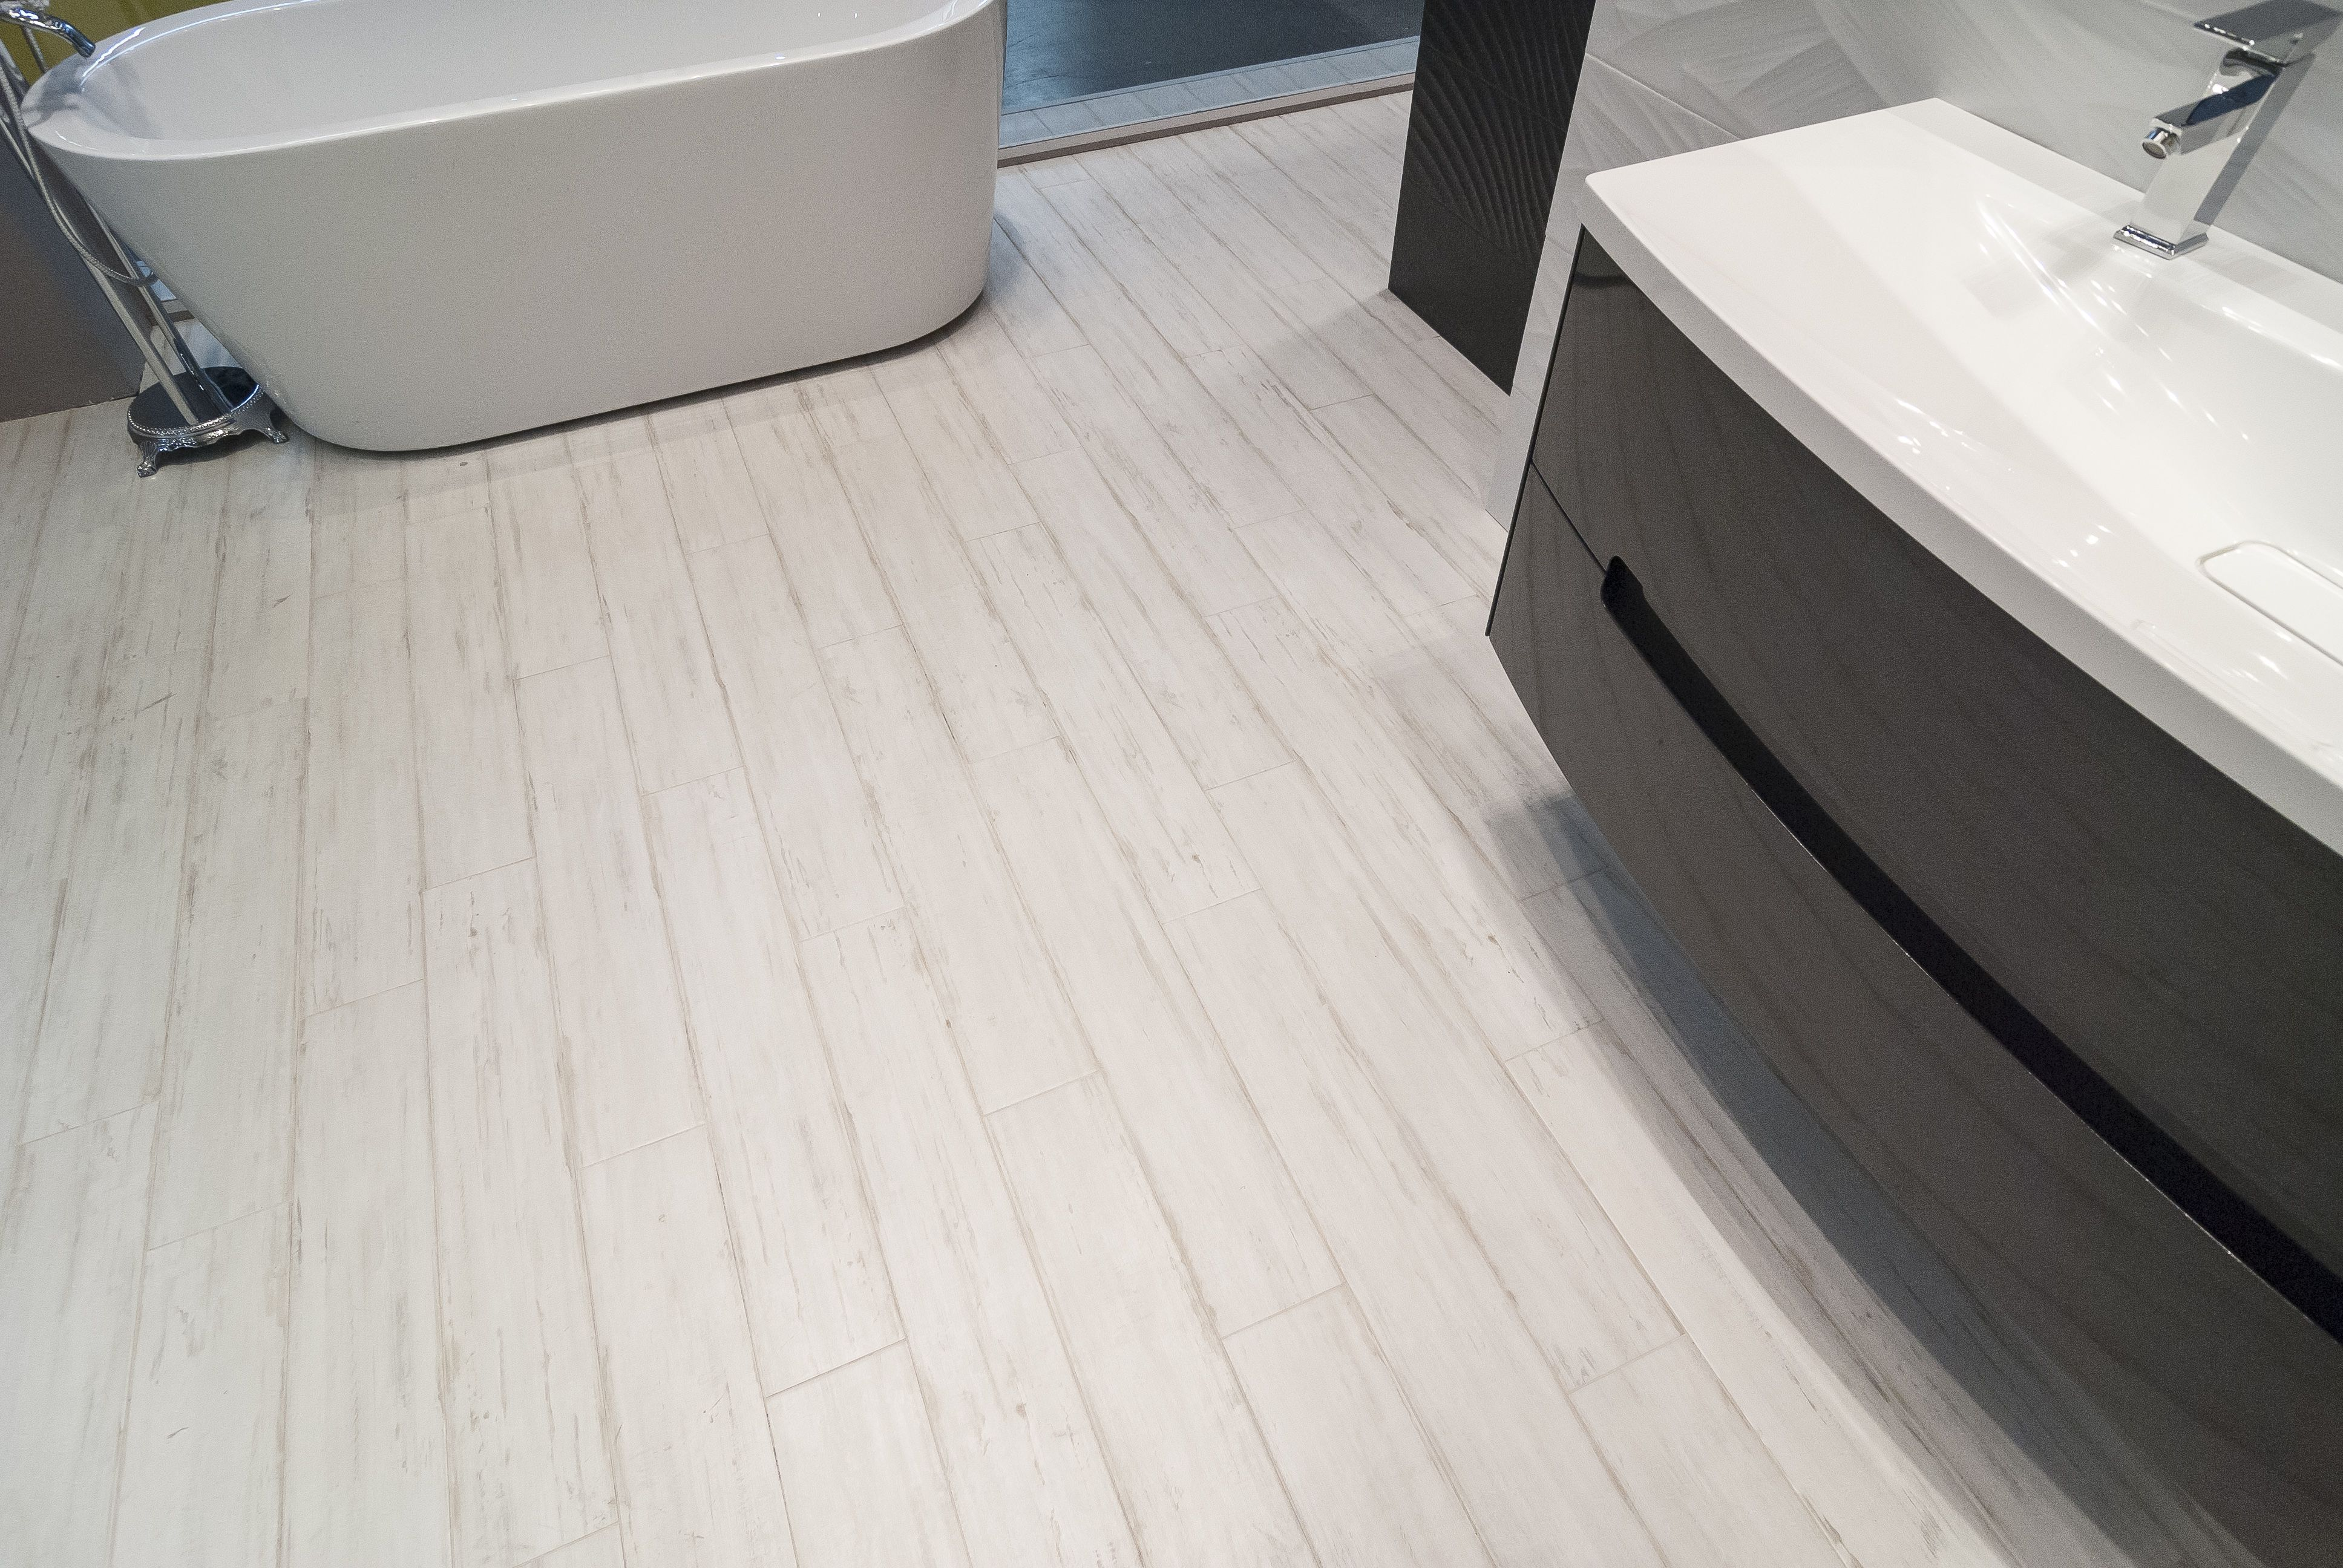 Loxley White wood effect tiles are a great way to add subtle style ...